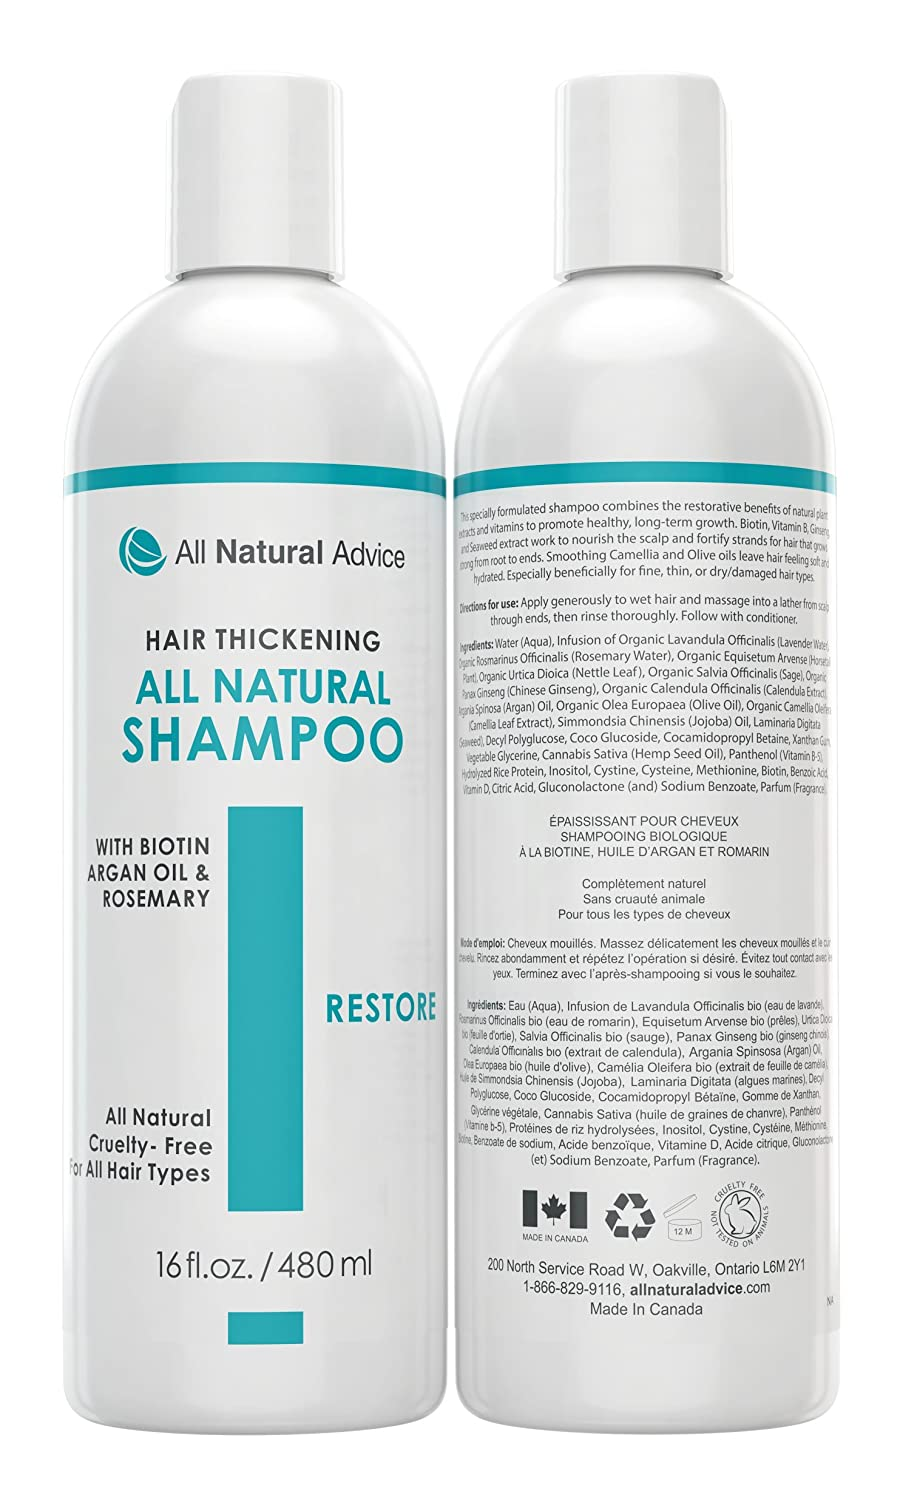 All-Natural & Organic Hair Growth Shampoo (1-Pack) Fortified with Argan Oil and Biotin | Nourishes Scalp Follicles to Promote Re-Growth of your Natural Hair. For thinning or Balding Hair of All Types – Made in Canada. Enjoy your Natural and Healthy Rad